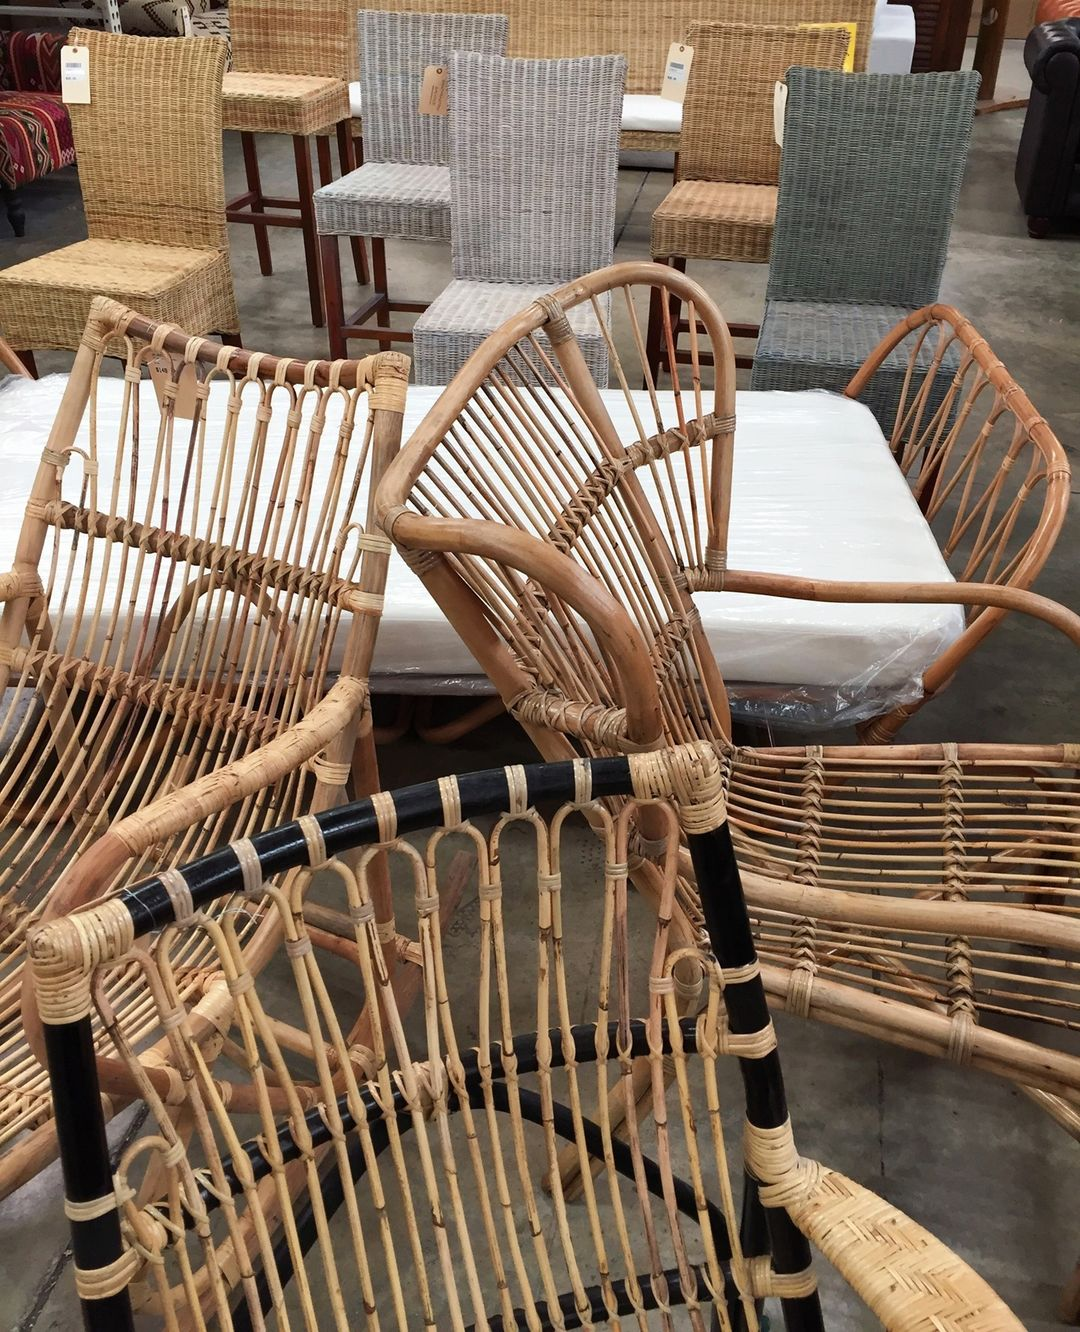 We have NEW styles of Rattan Furniture and more on the way! Click the link in our bio to see them in detail.